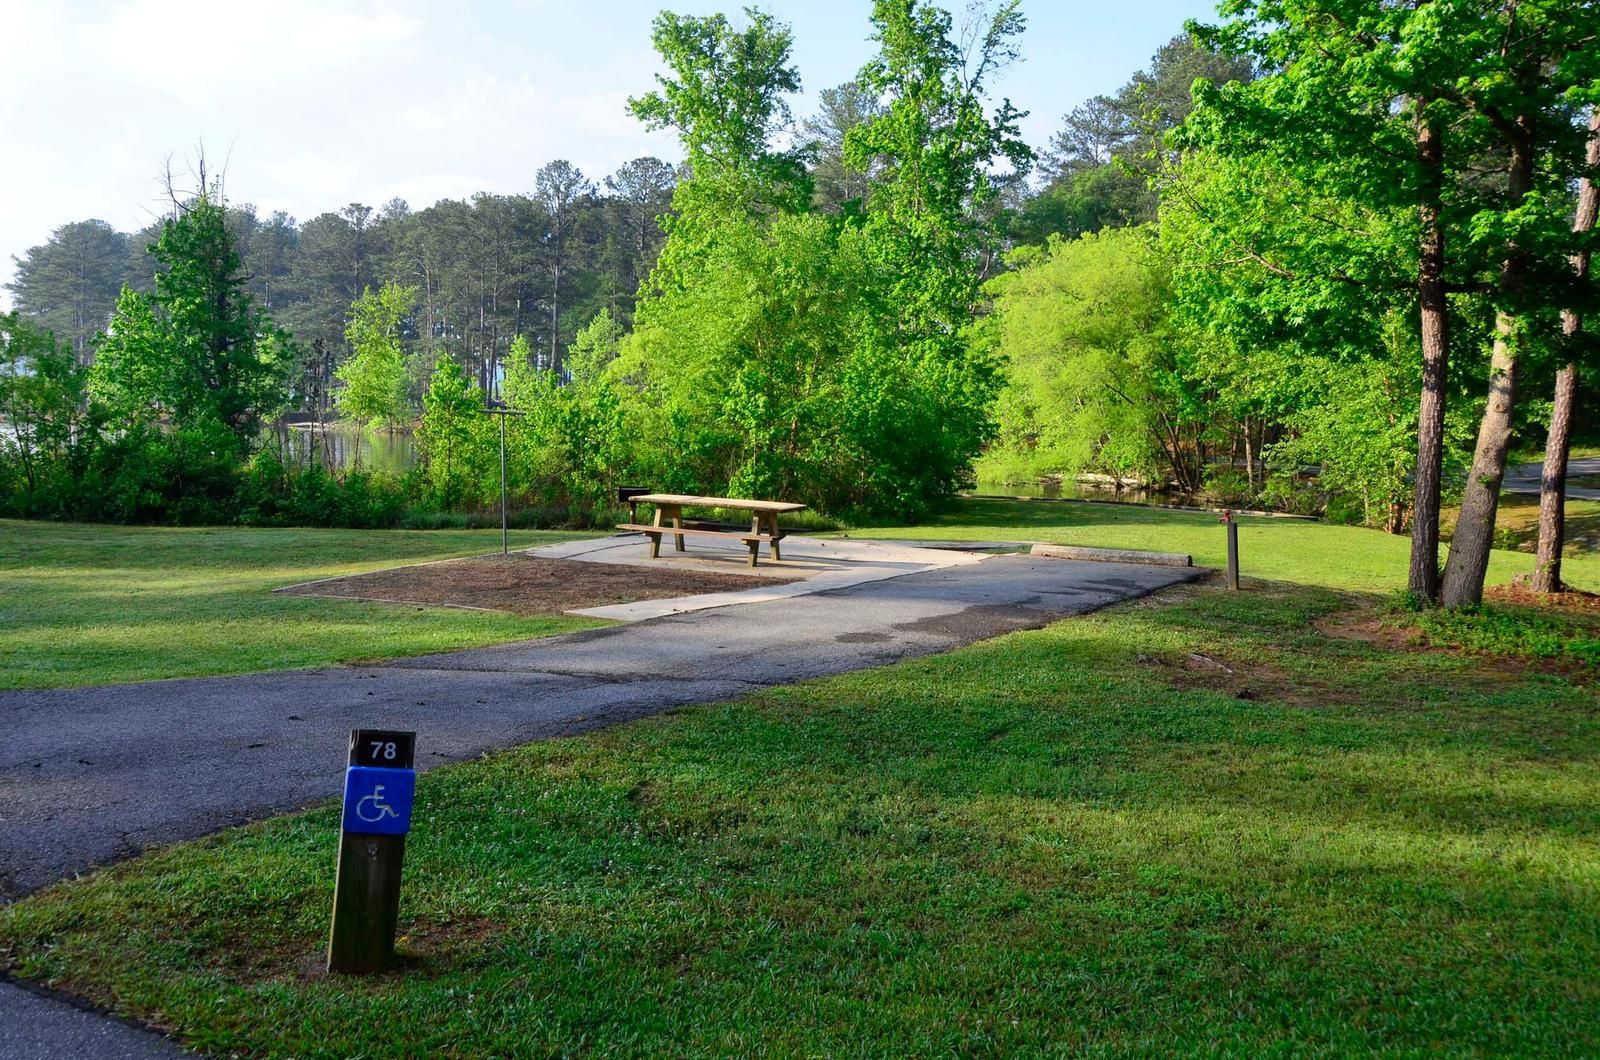 Sweetwater Campground, campsite #78.